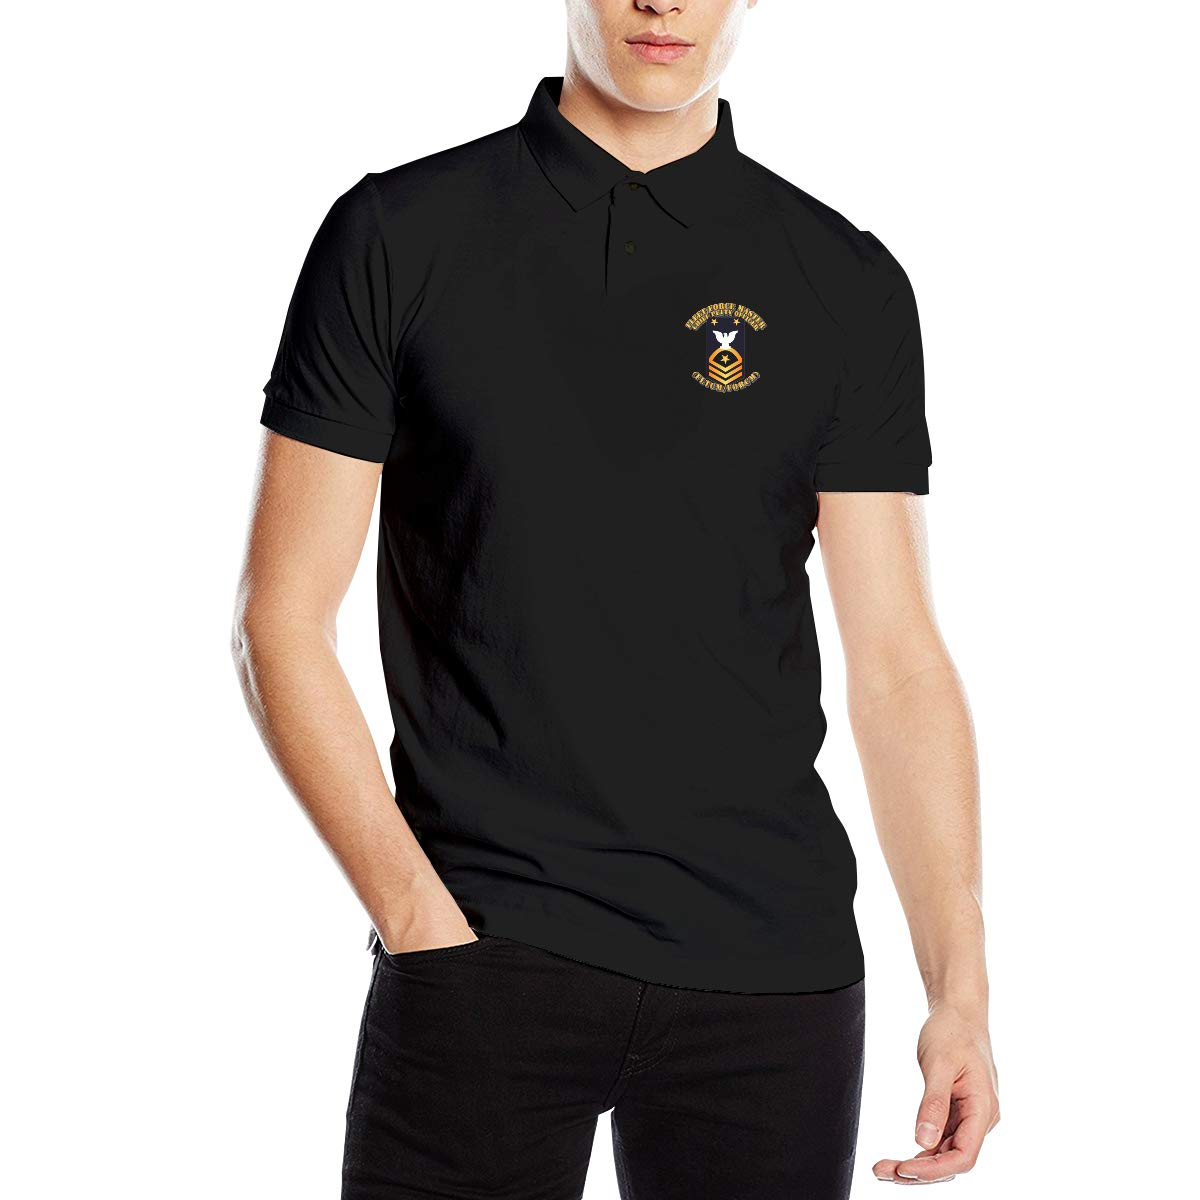 You Know And Good Navy Fltcm Forcm Mens Regular-Fit Cotton Polo Shirt Short Sleeve